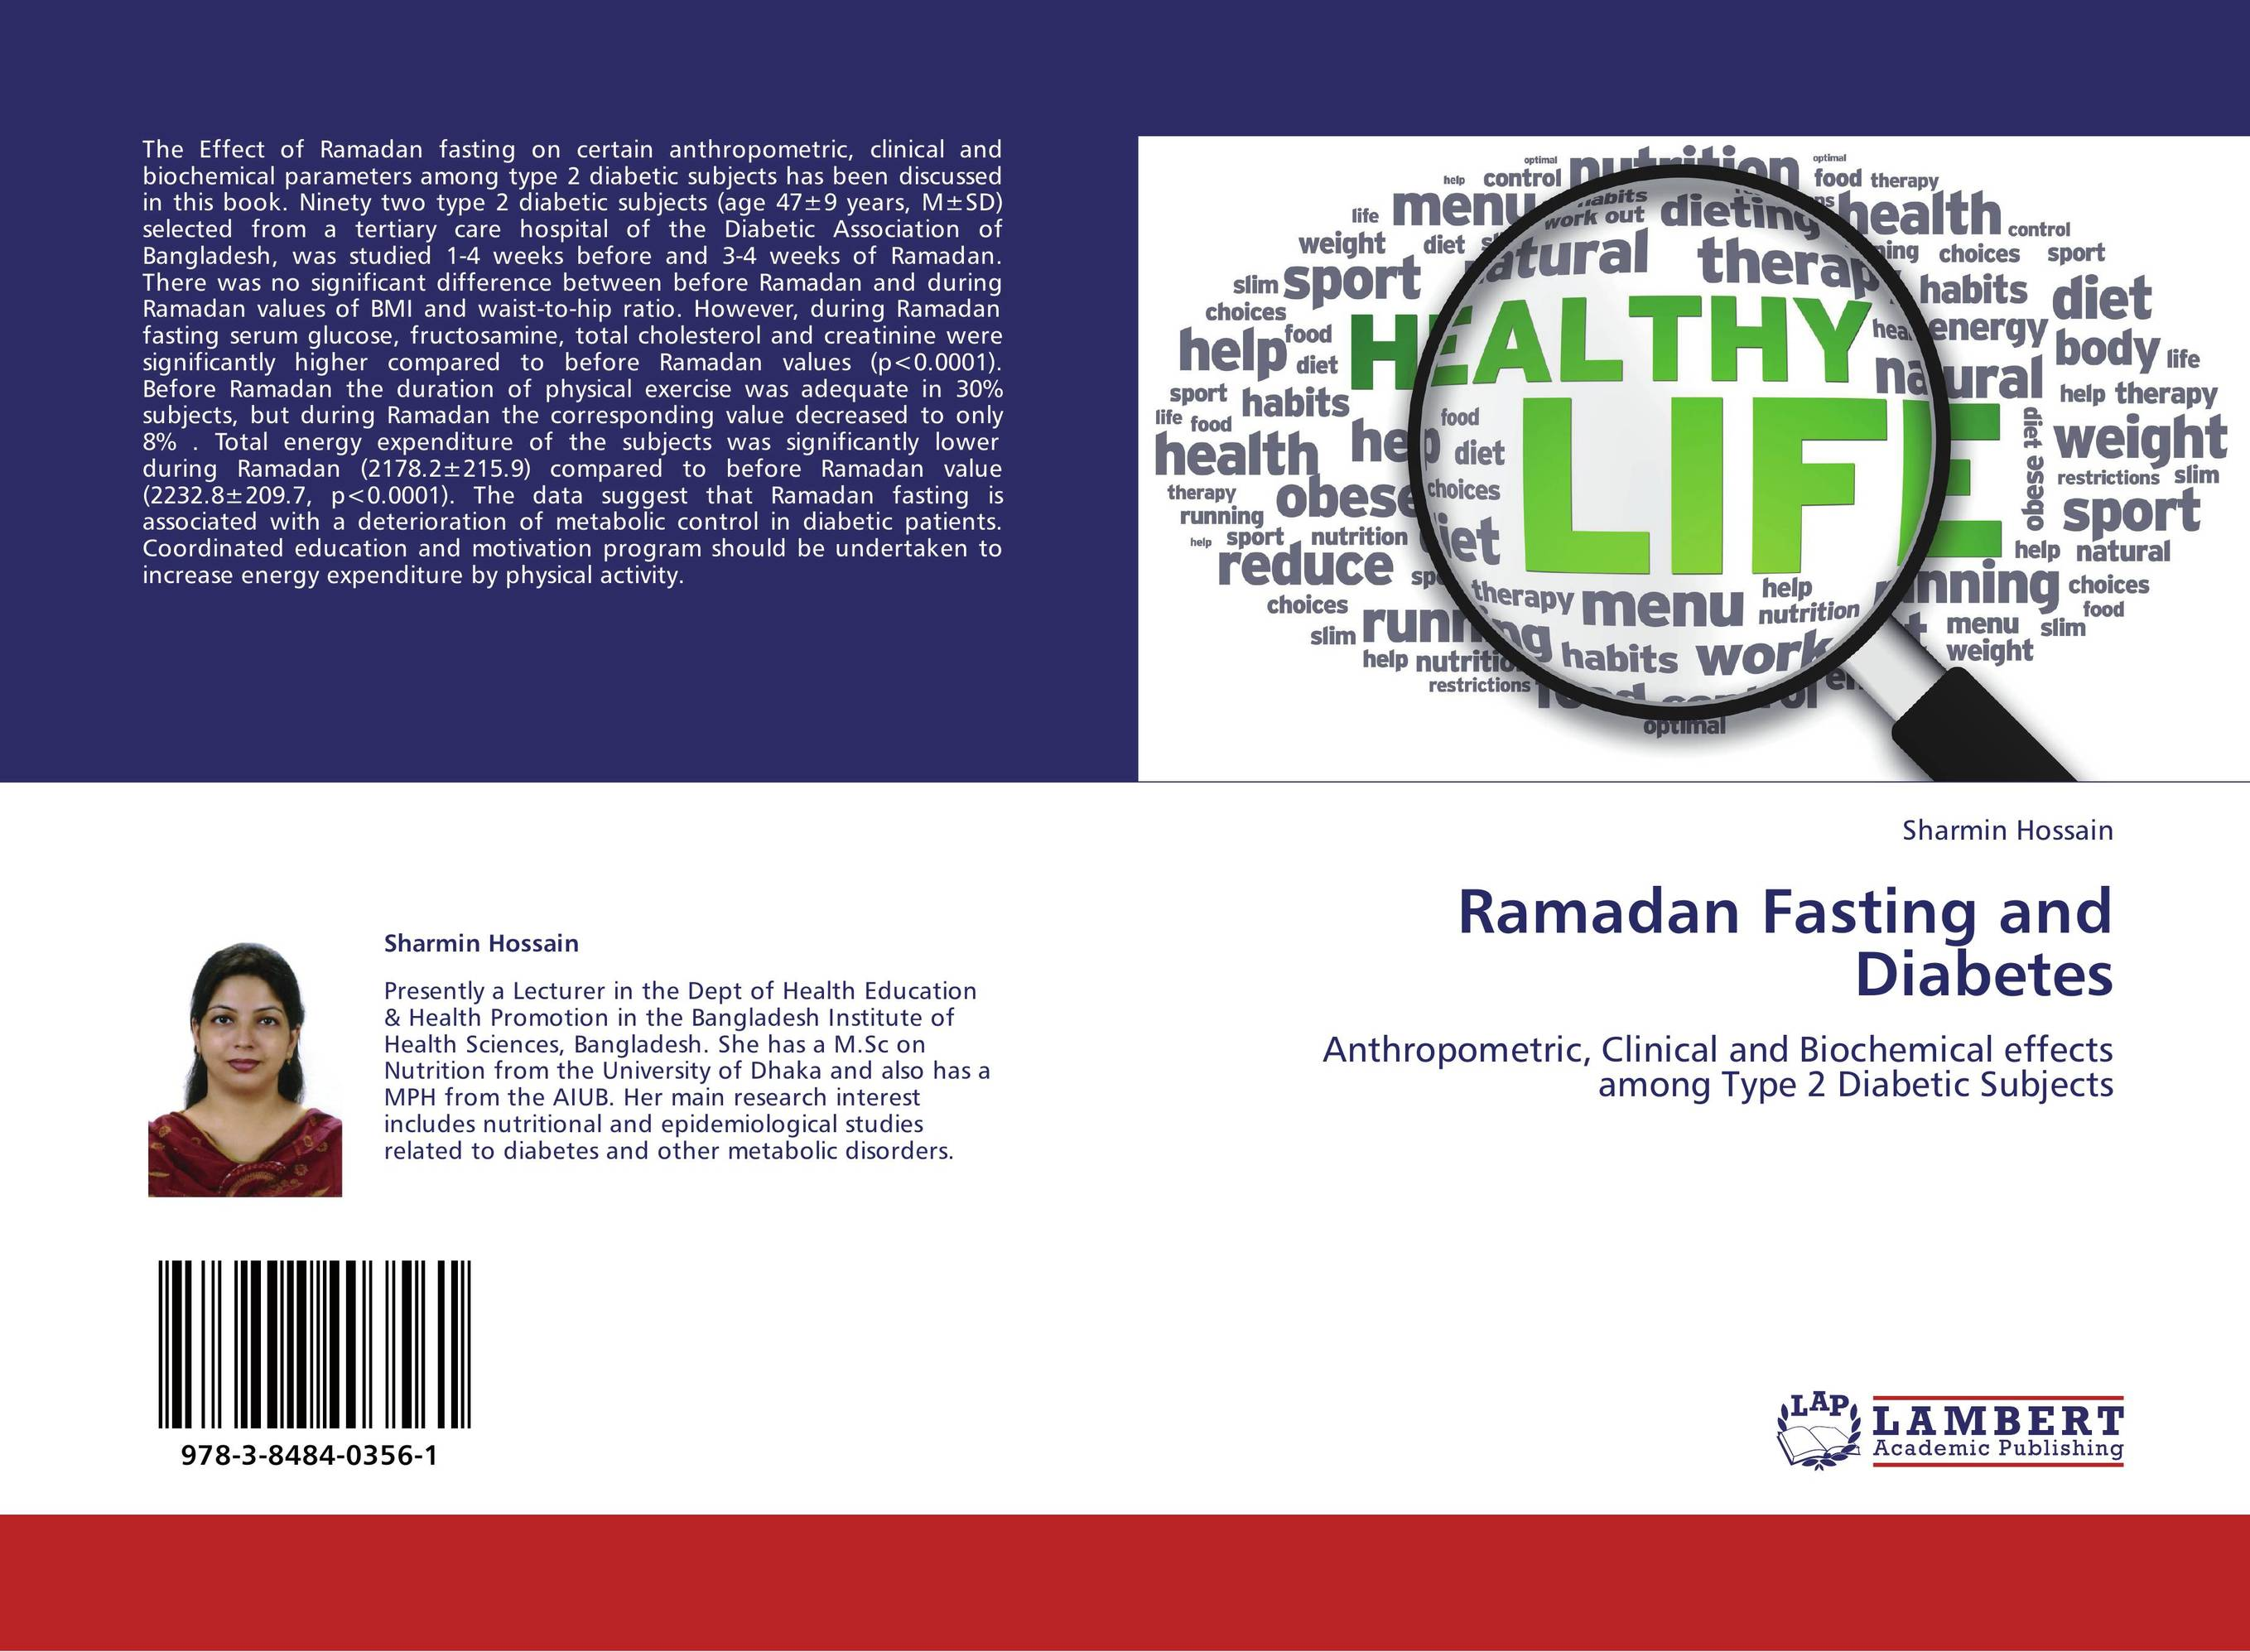 health effects of fasting in ramadan essay An increase of negative health effects are observed exclusively during the month of ramadan due to fasting, such as migraines, tachycardia, severe headaches, dizziness, nausea, vomiting, circulatory collapse, and sleeping problems.